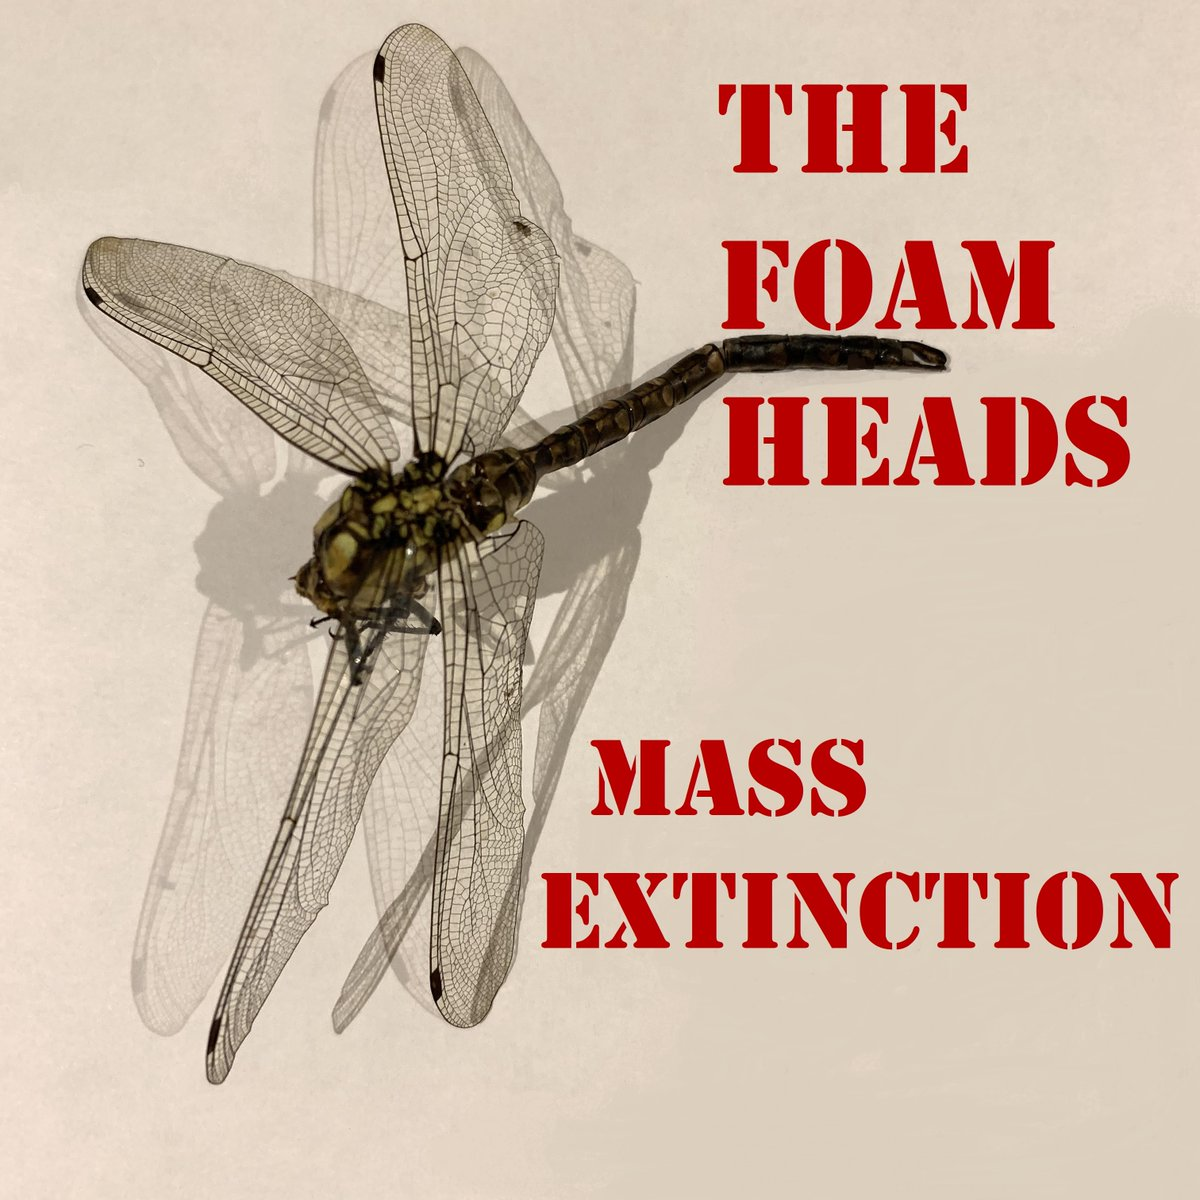 If life is a radio, turn up to ten. Now (Don't forget, click the link) Mass Extinction by The Foam Heads @foamheadsuk on